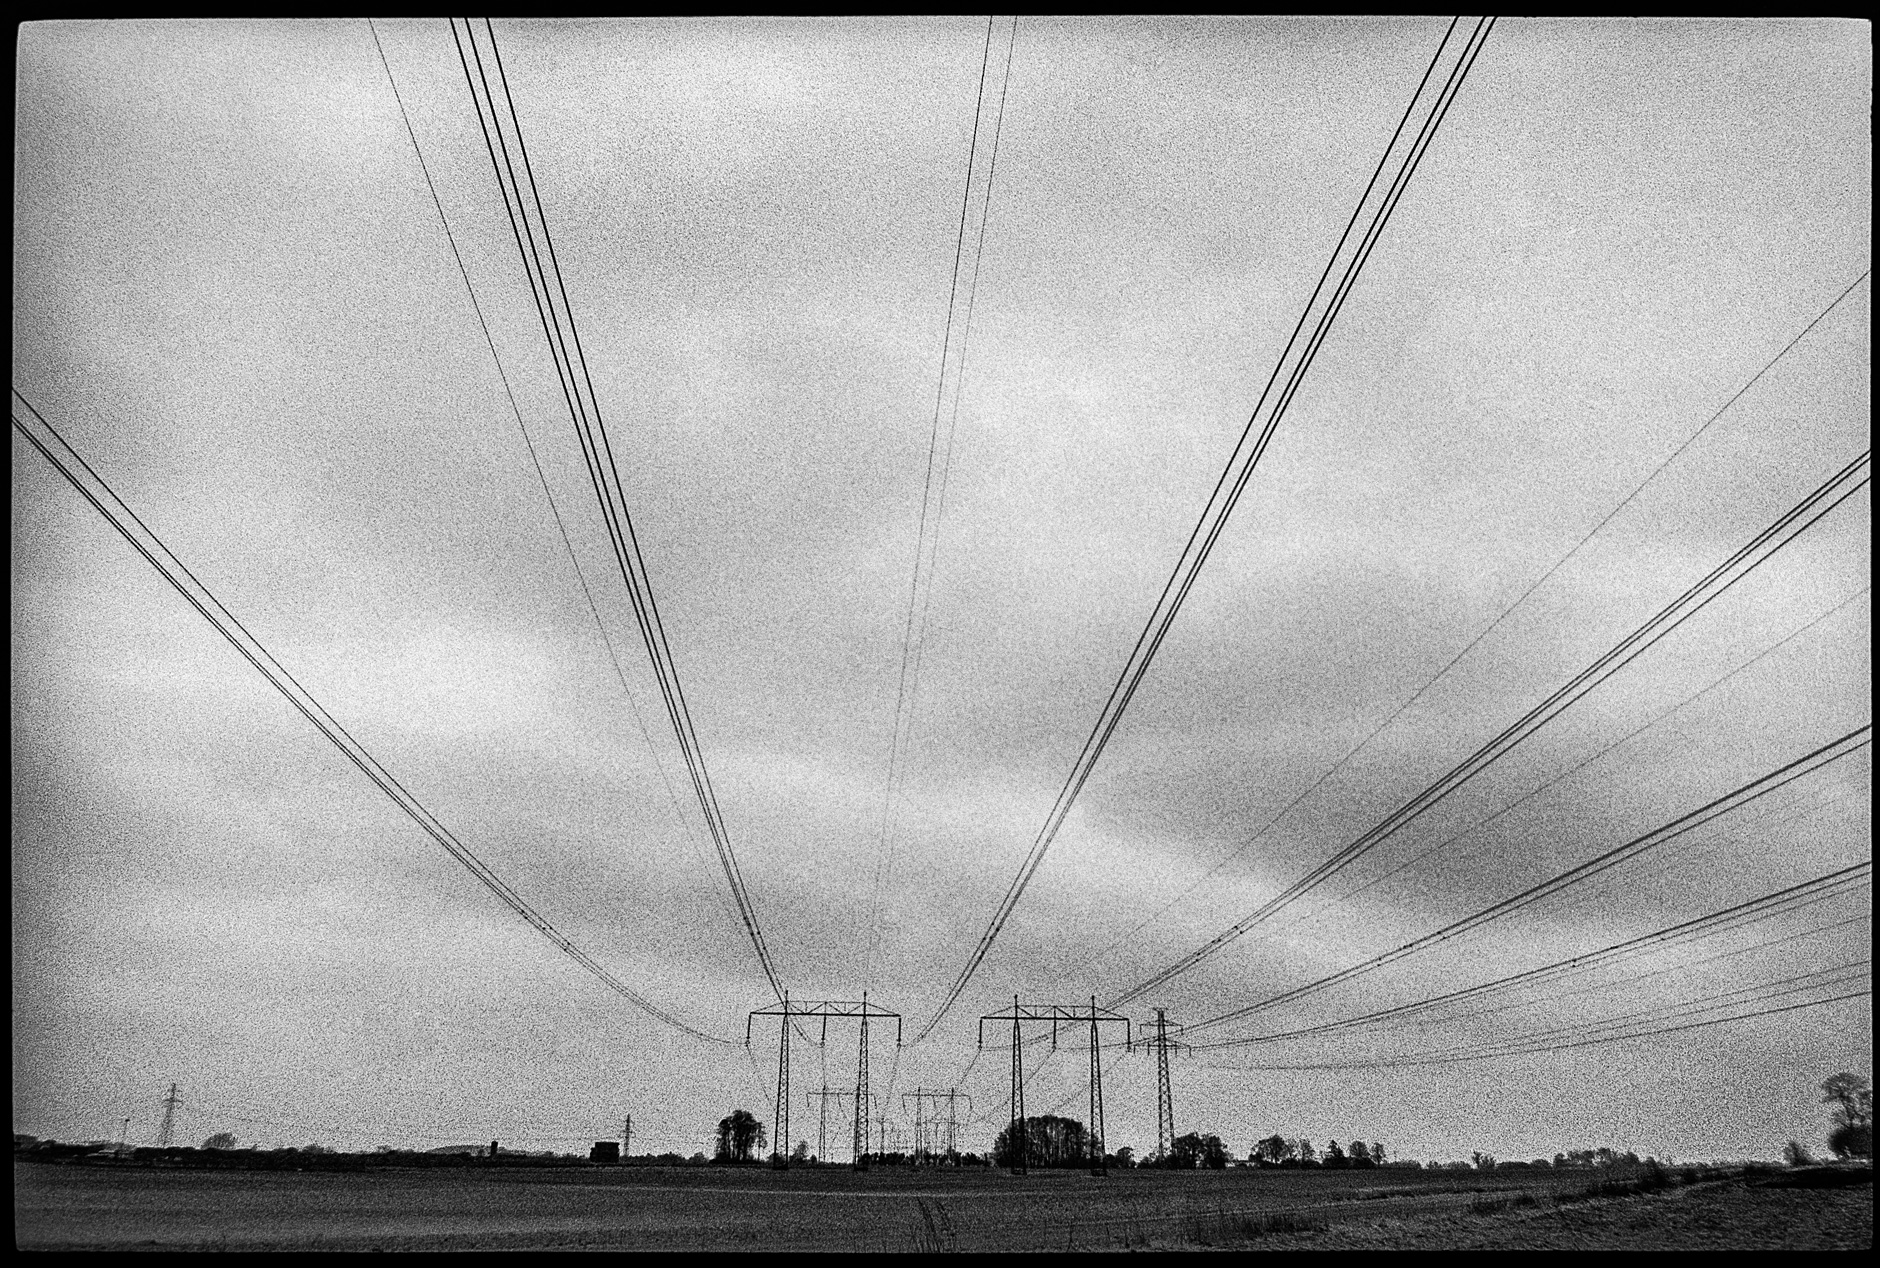 Electrical poles in Skåne, Sweden